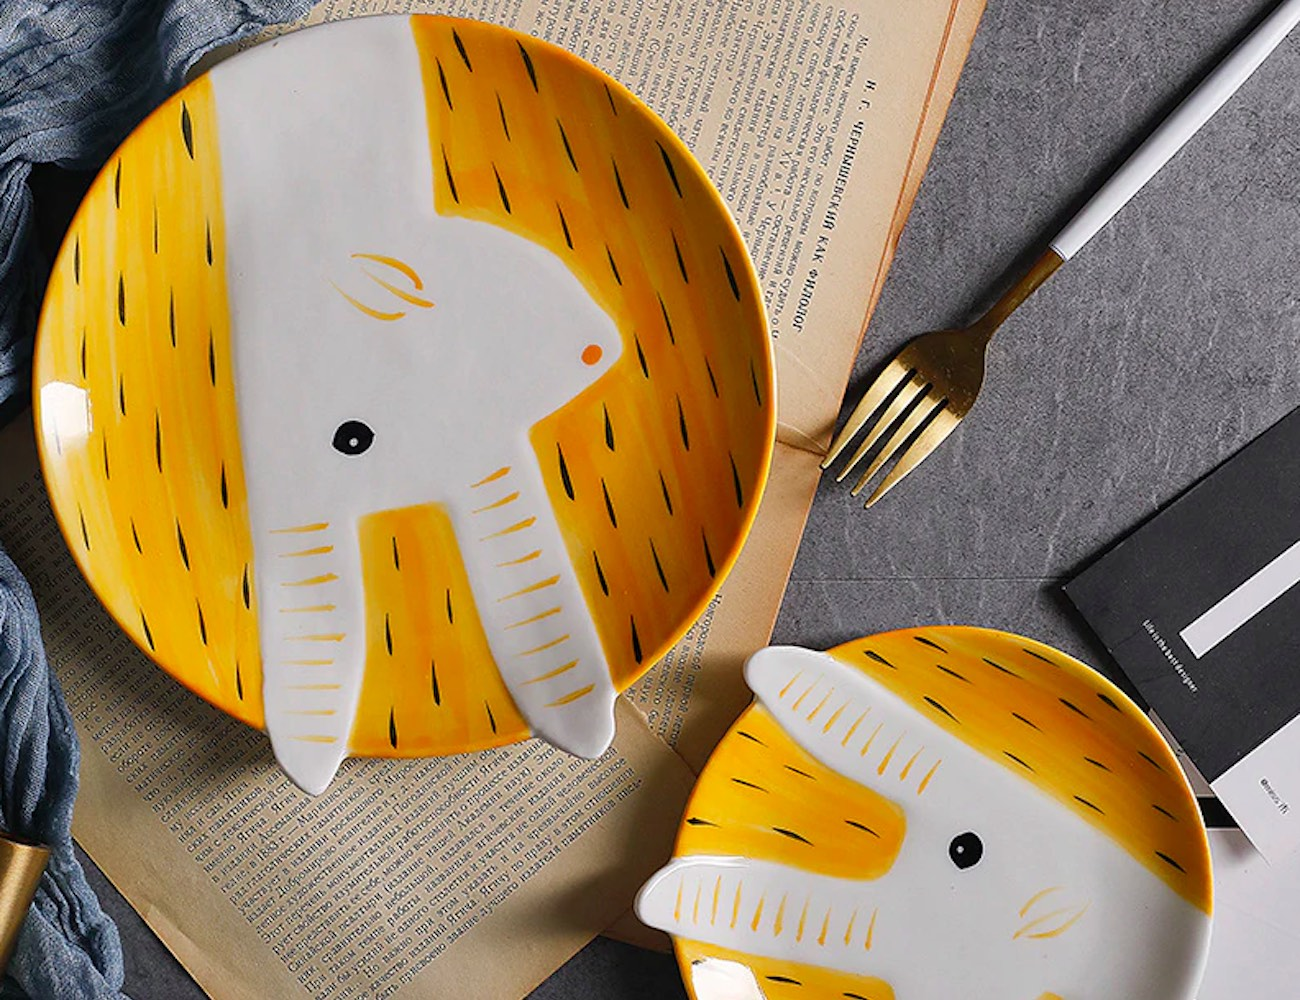 Adorable Animal 3D Designed Plates add some cuteness to your breakfast